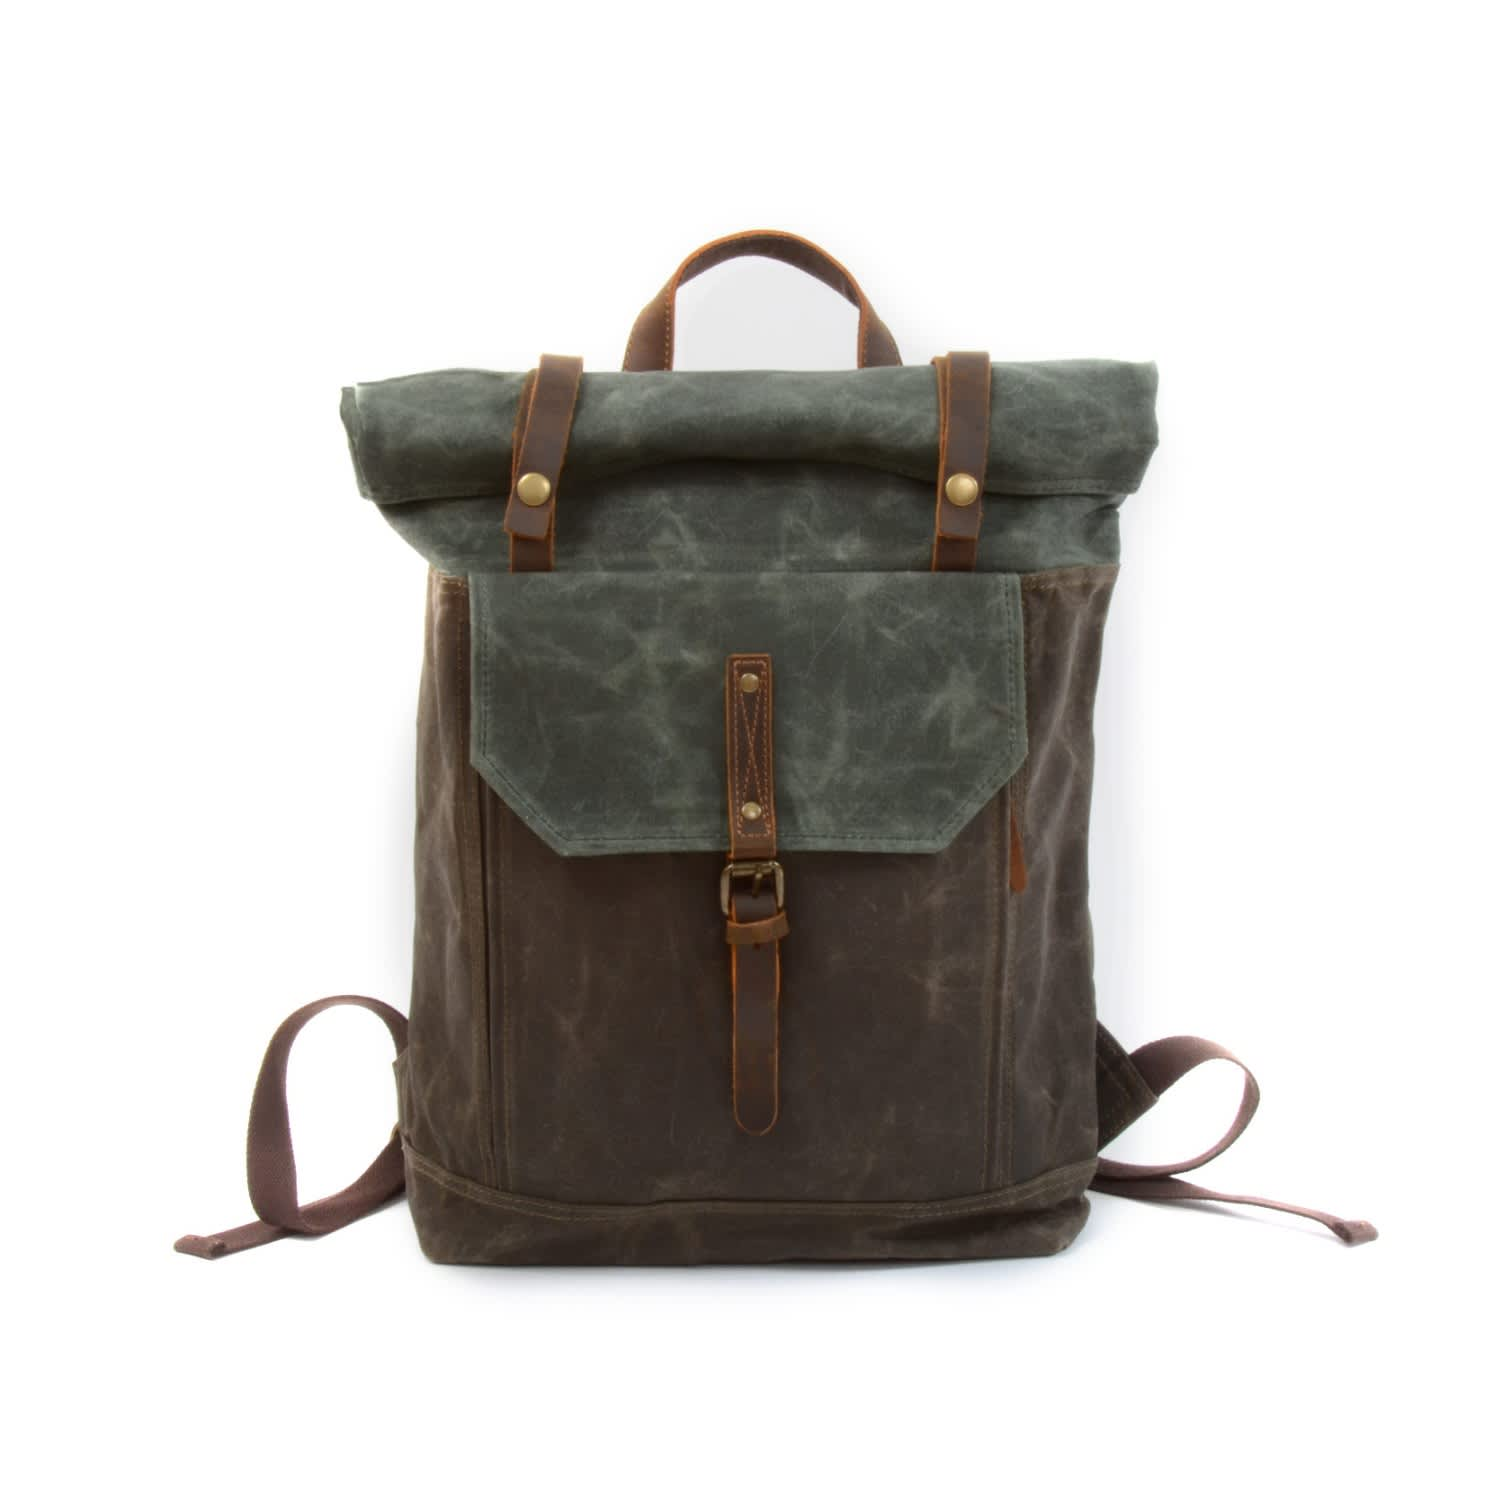 Waxed Canvas Roll-Top Backpack in Deep Green  5ec88c38aabd6